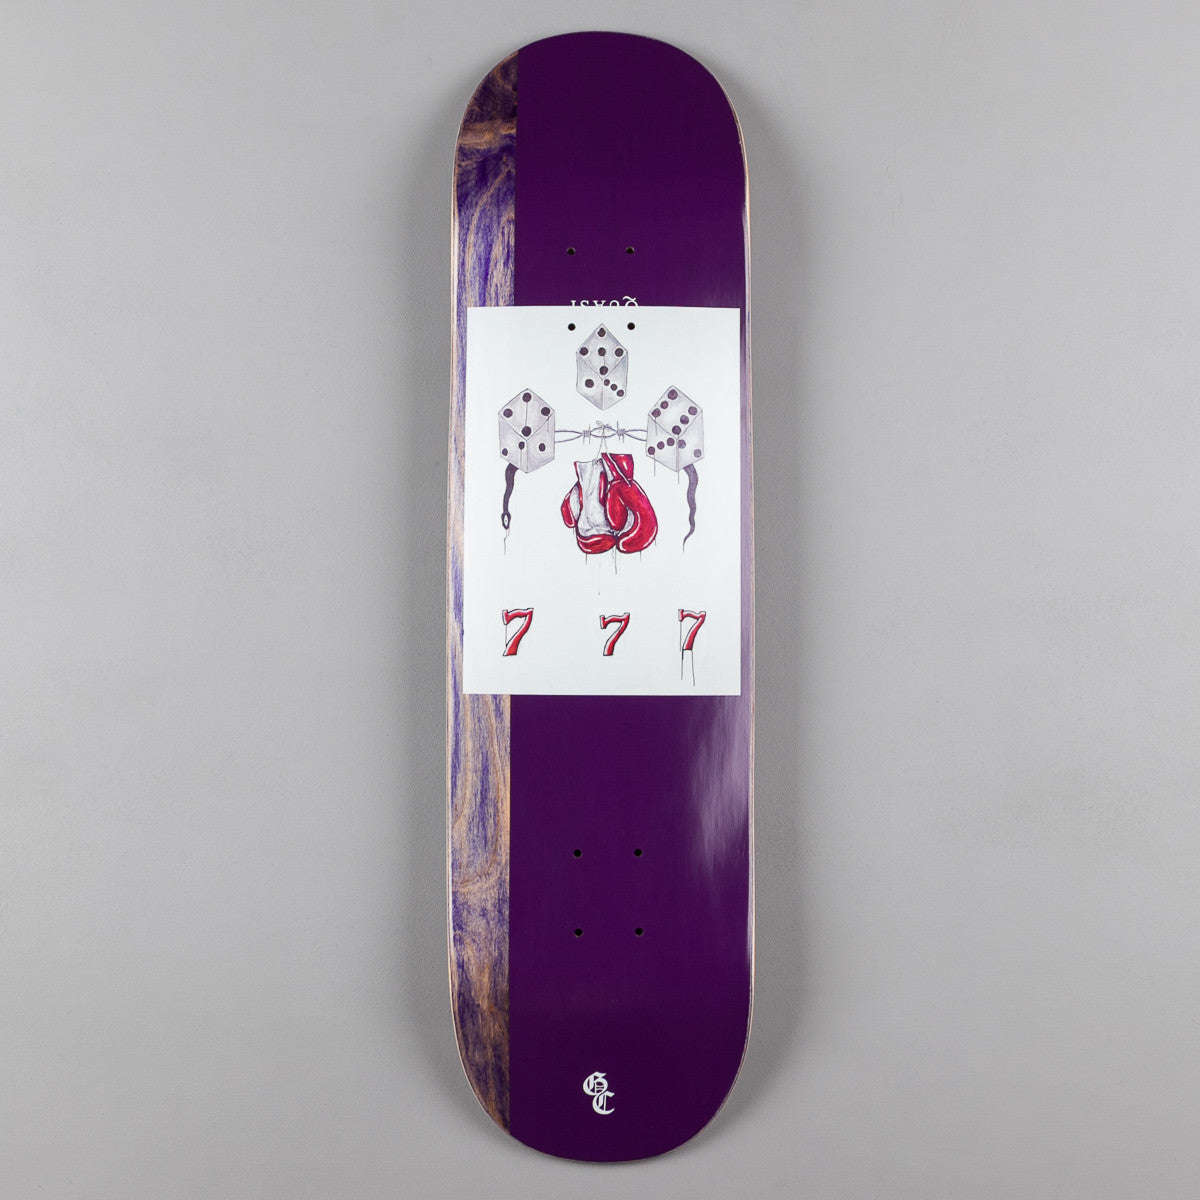 Quasi Crockett Rust [One] Deck - Purple - 8.25""